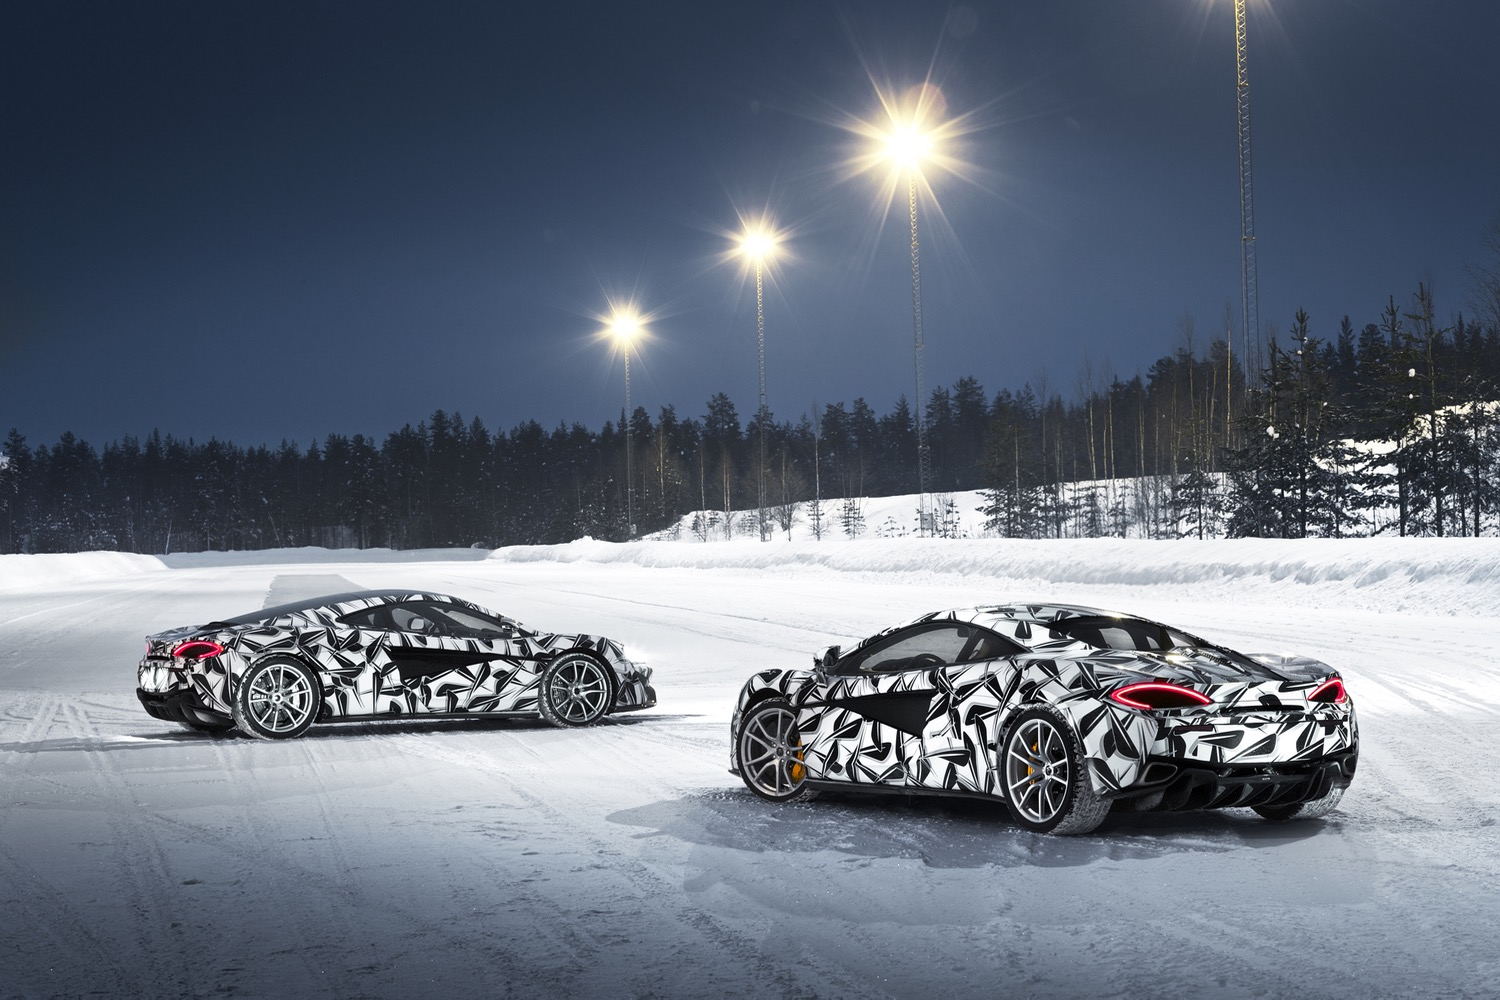 McLaren 570S Ice Driving experience in Finland - that'll be £12500